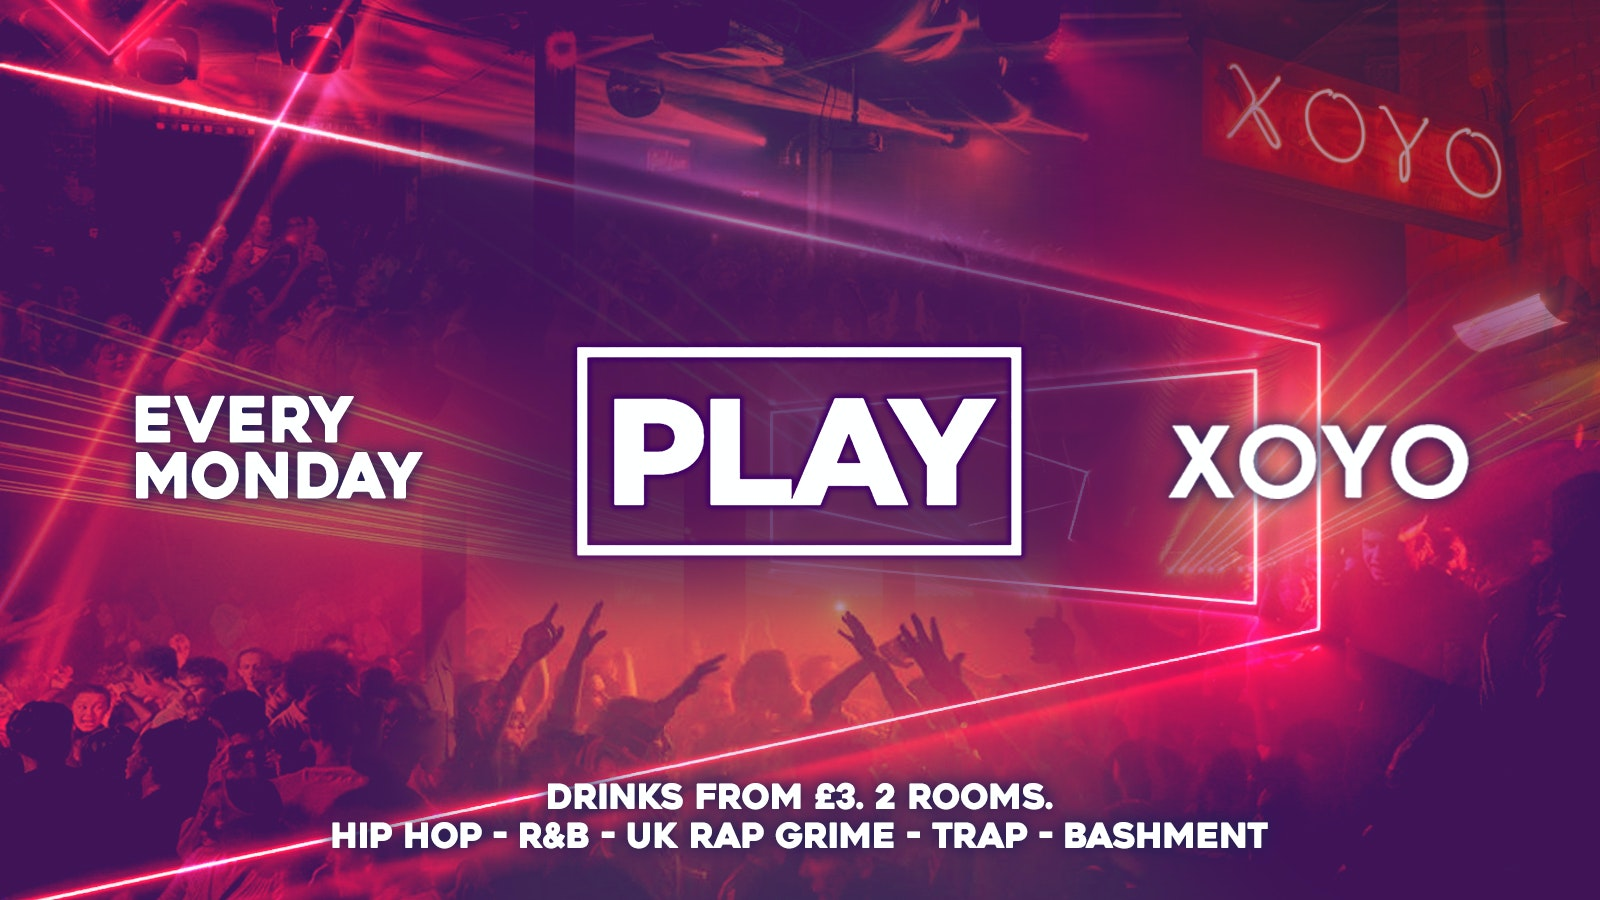 Play London is BACK! Launch Night on June 21st – The Biggest Weekly Monday Student Night in London // SOLD OUT! Get your tickets for June 28th NOW!